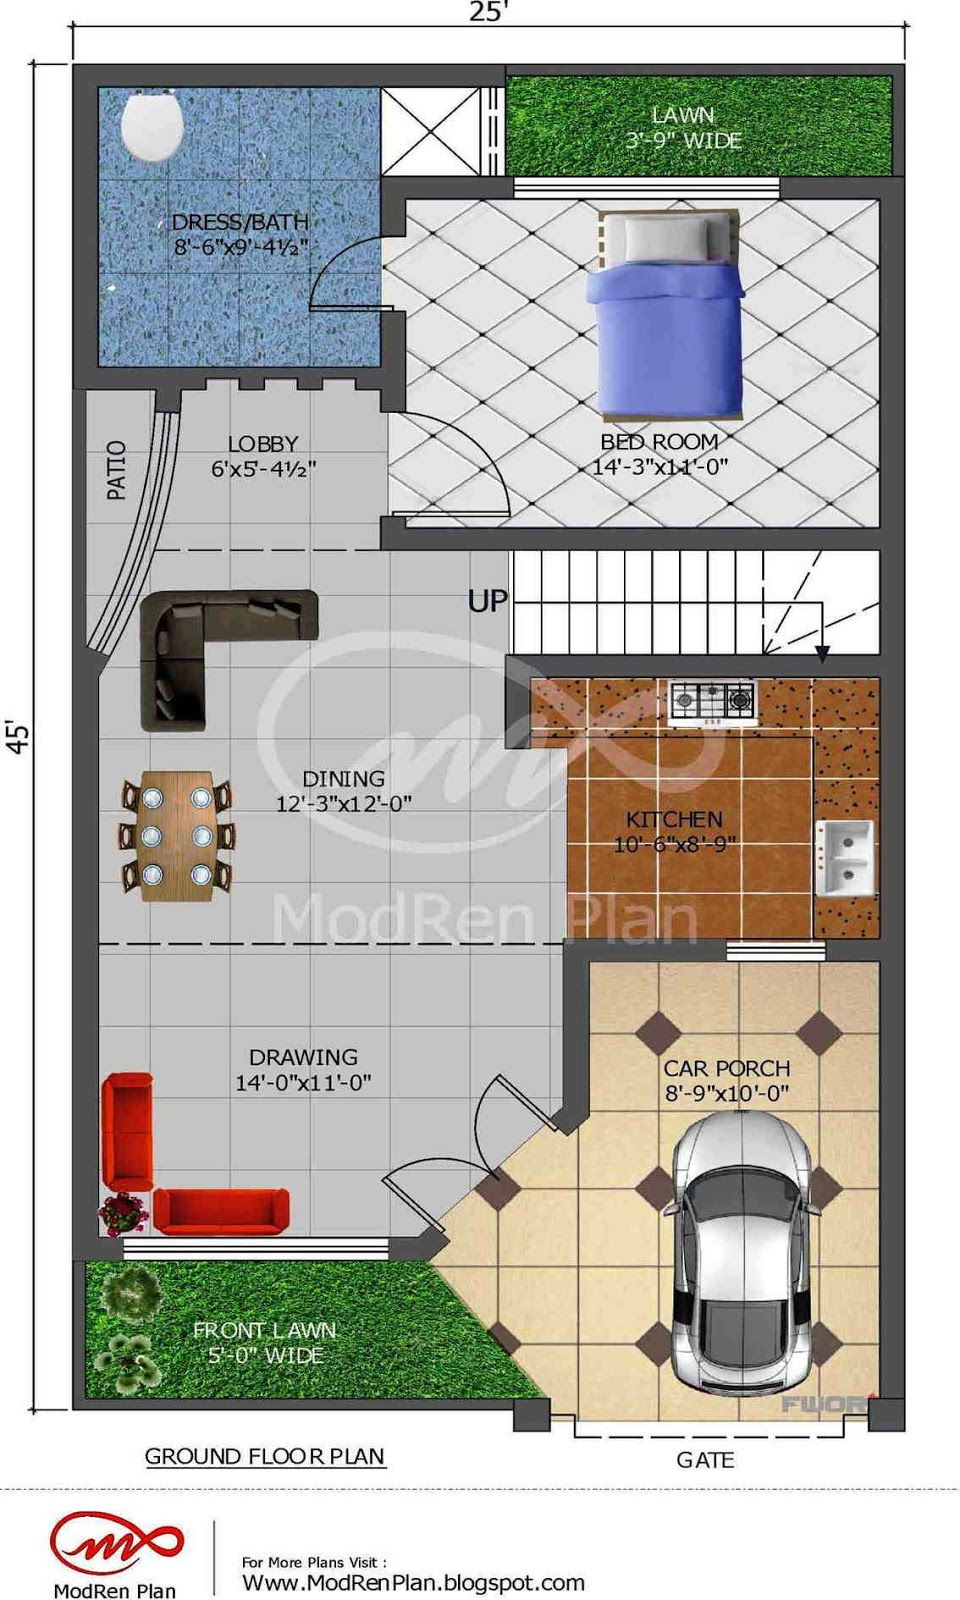 5 marla house plan 1200 sq ft 25x45 feetwww modrenplan